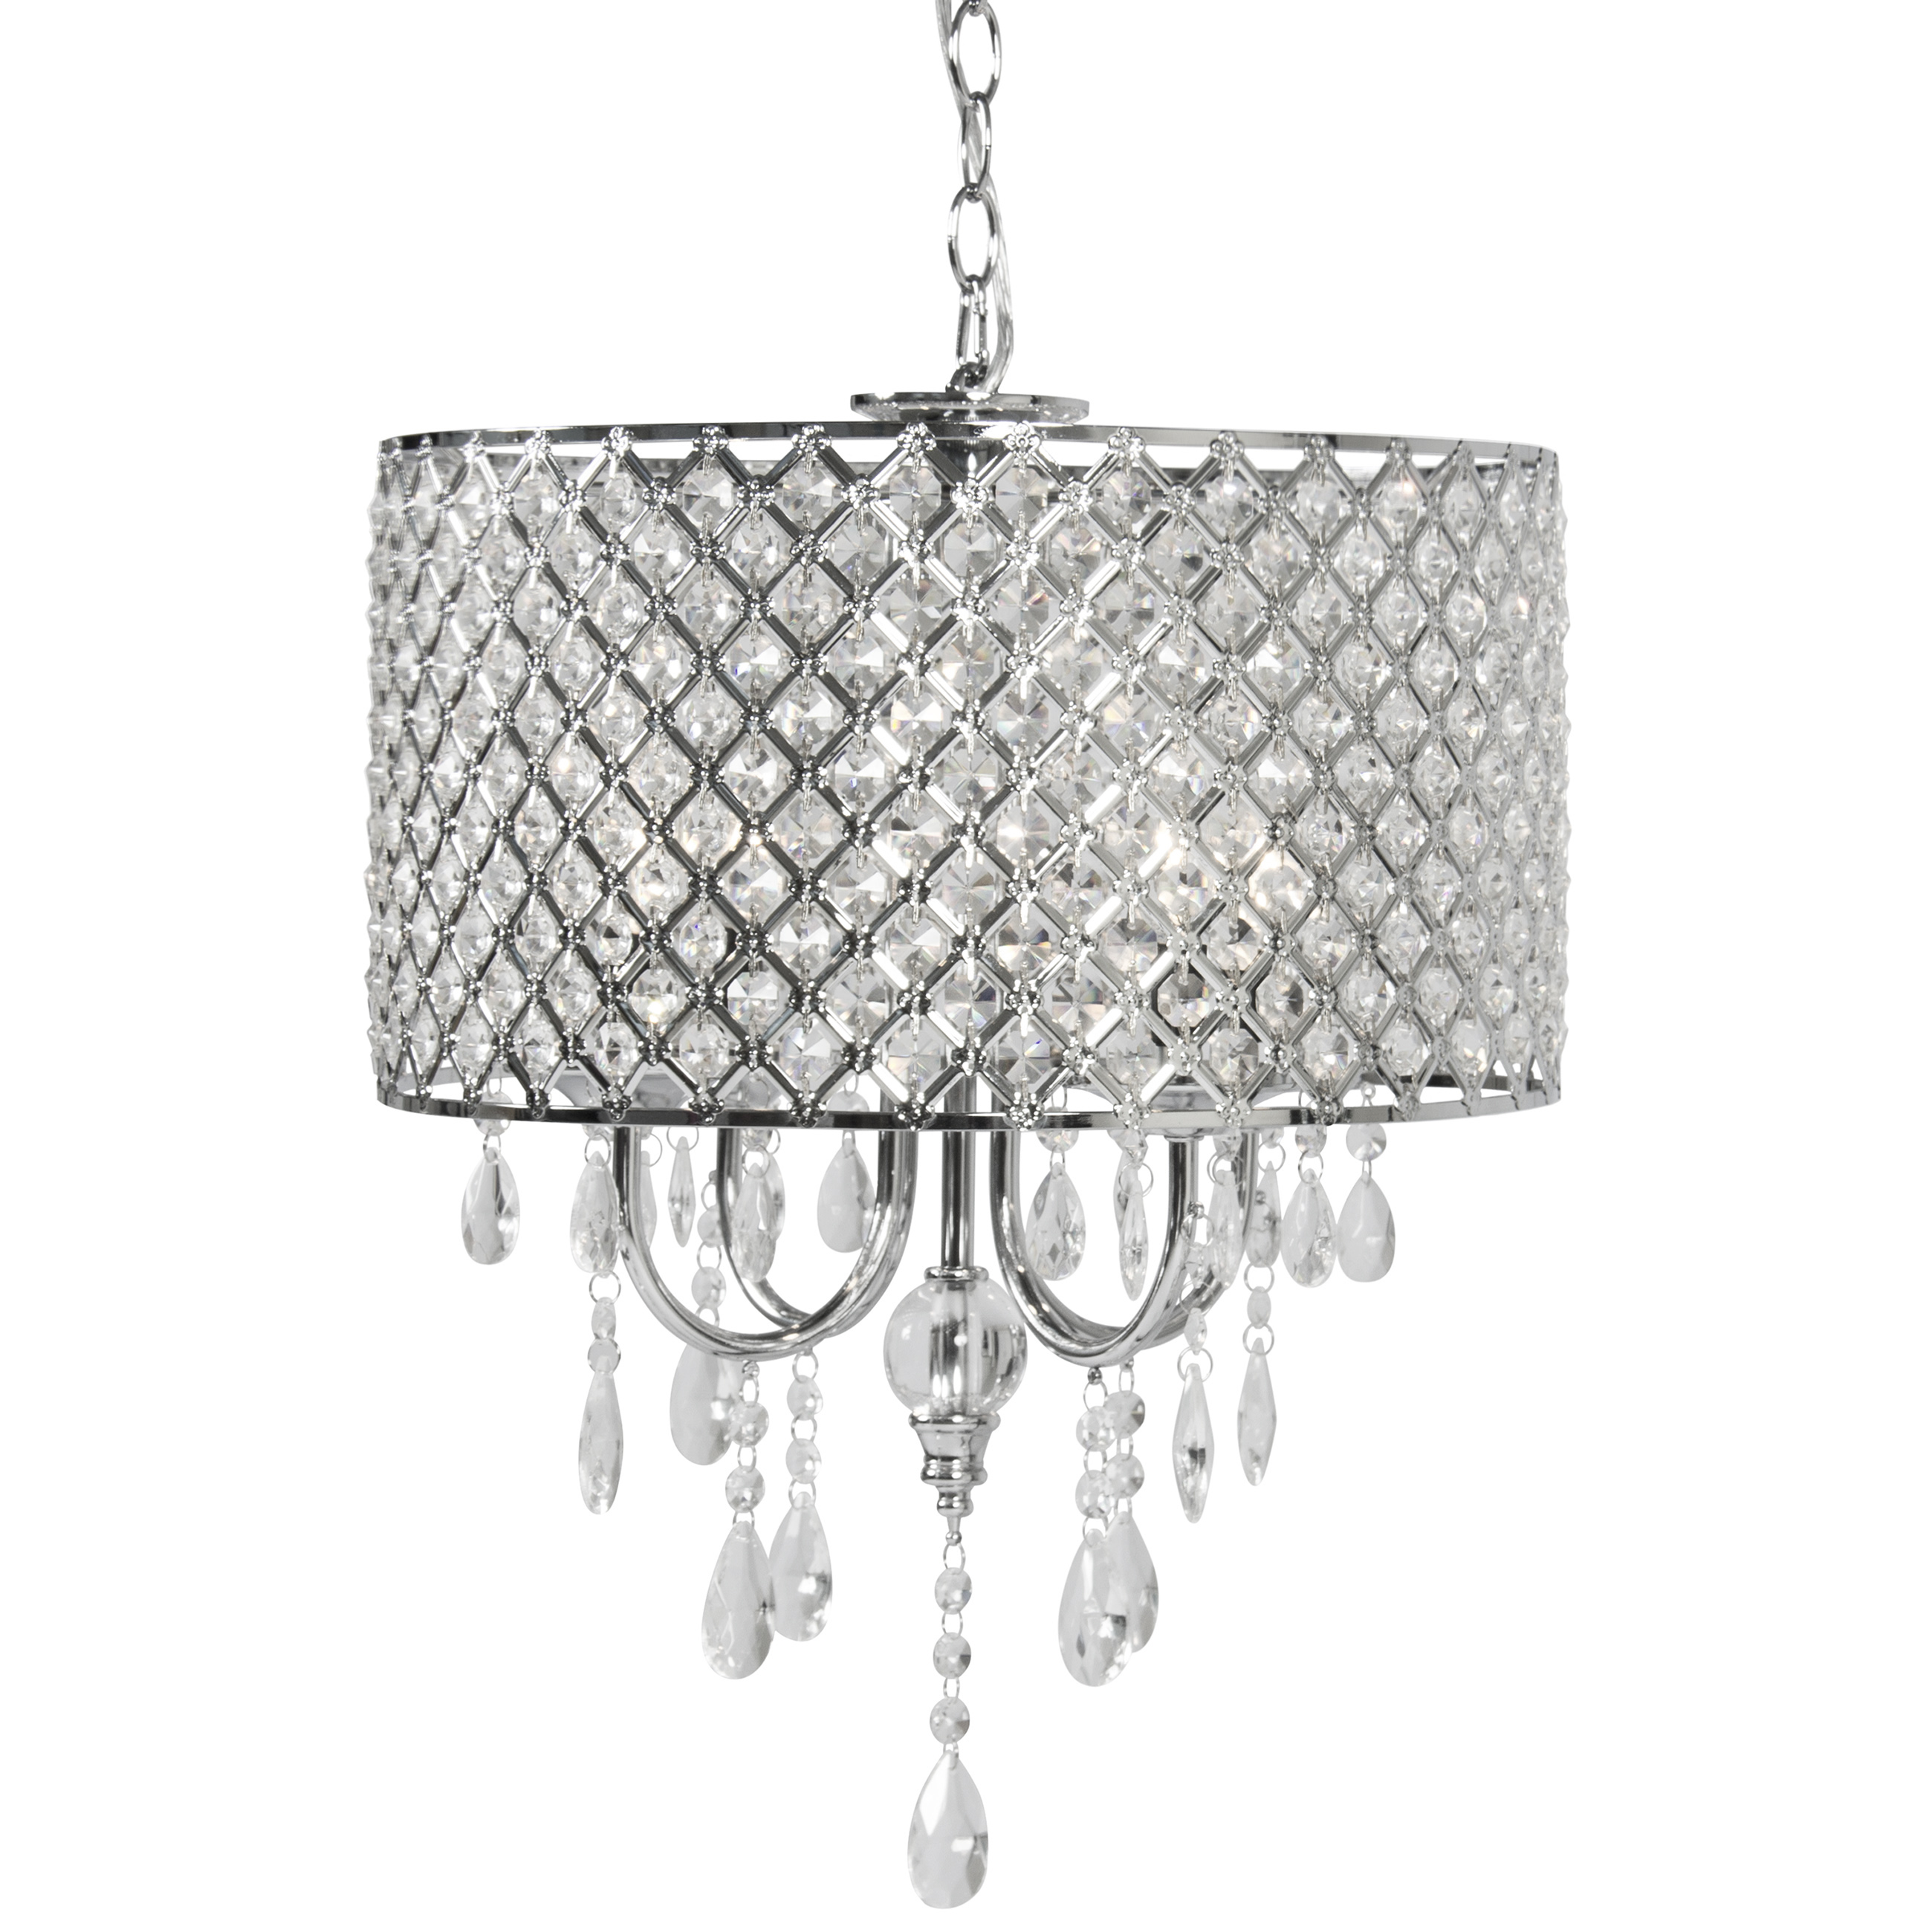 Best Choice Products BCP Crystal Chandelier Lighting Pendant Glass Ceiling Lamp Center Light